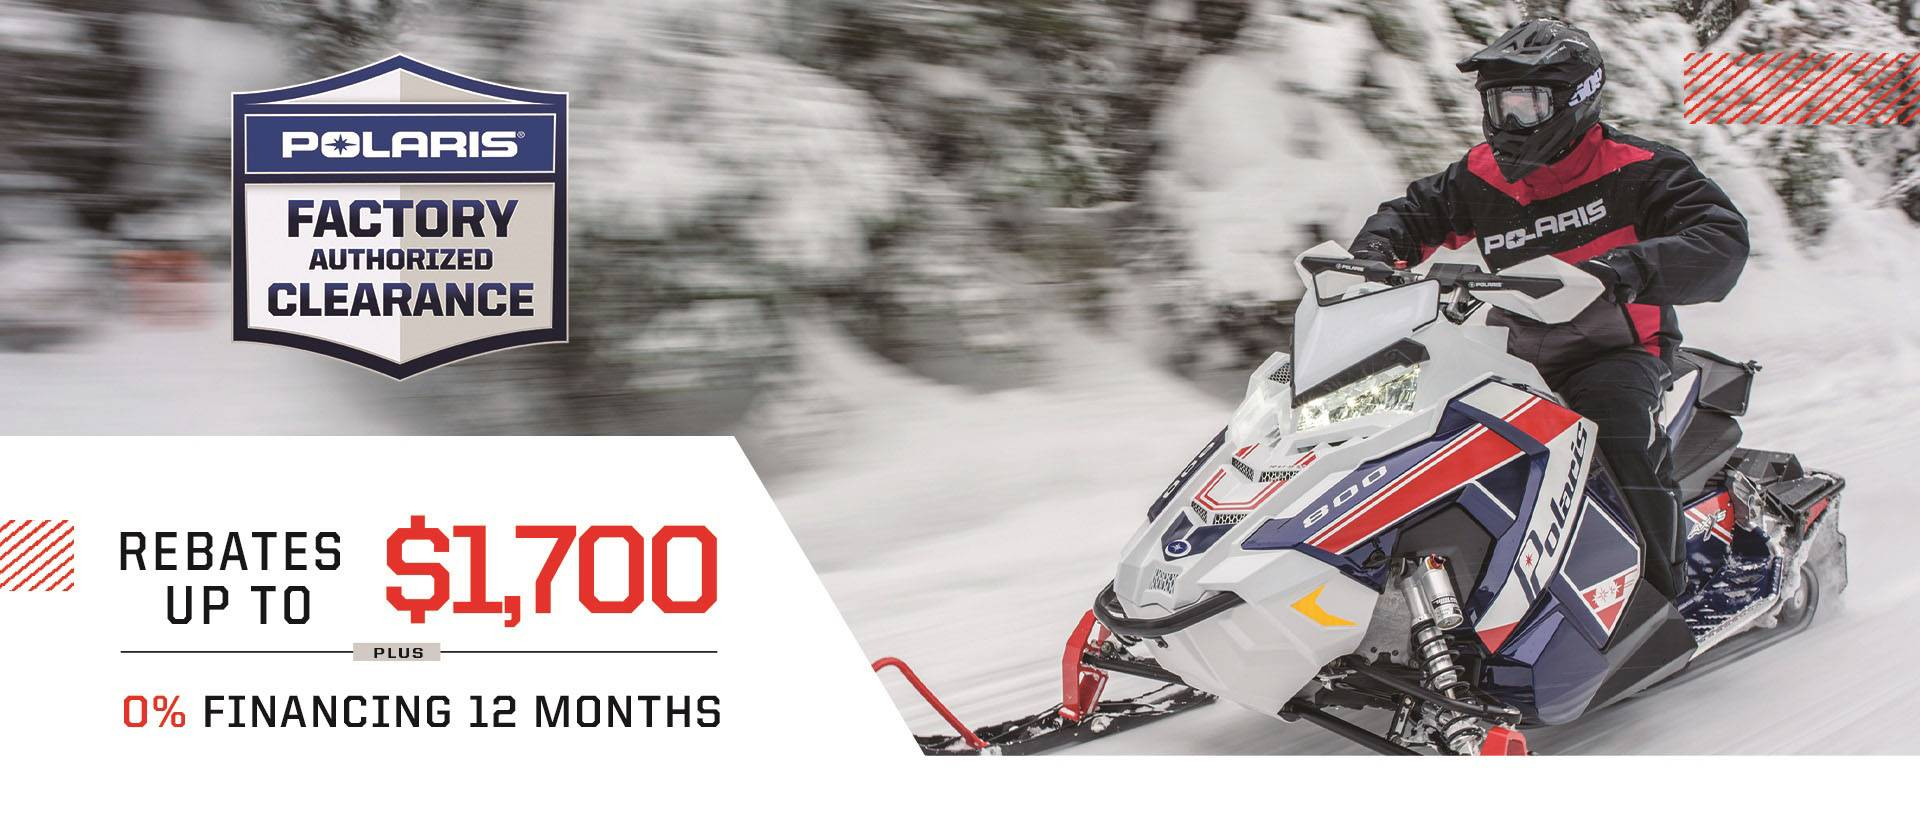 K & M Sales and Service | New & used powersports dealership selling